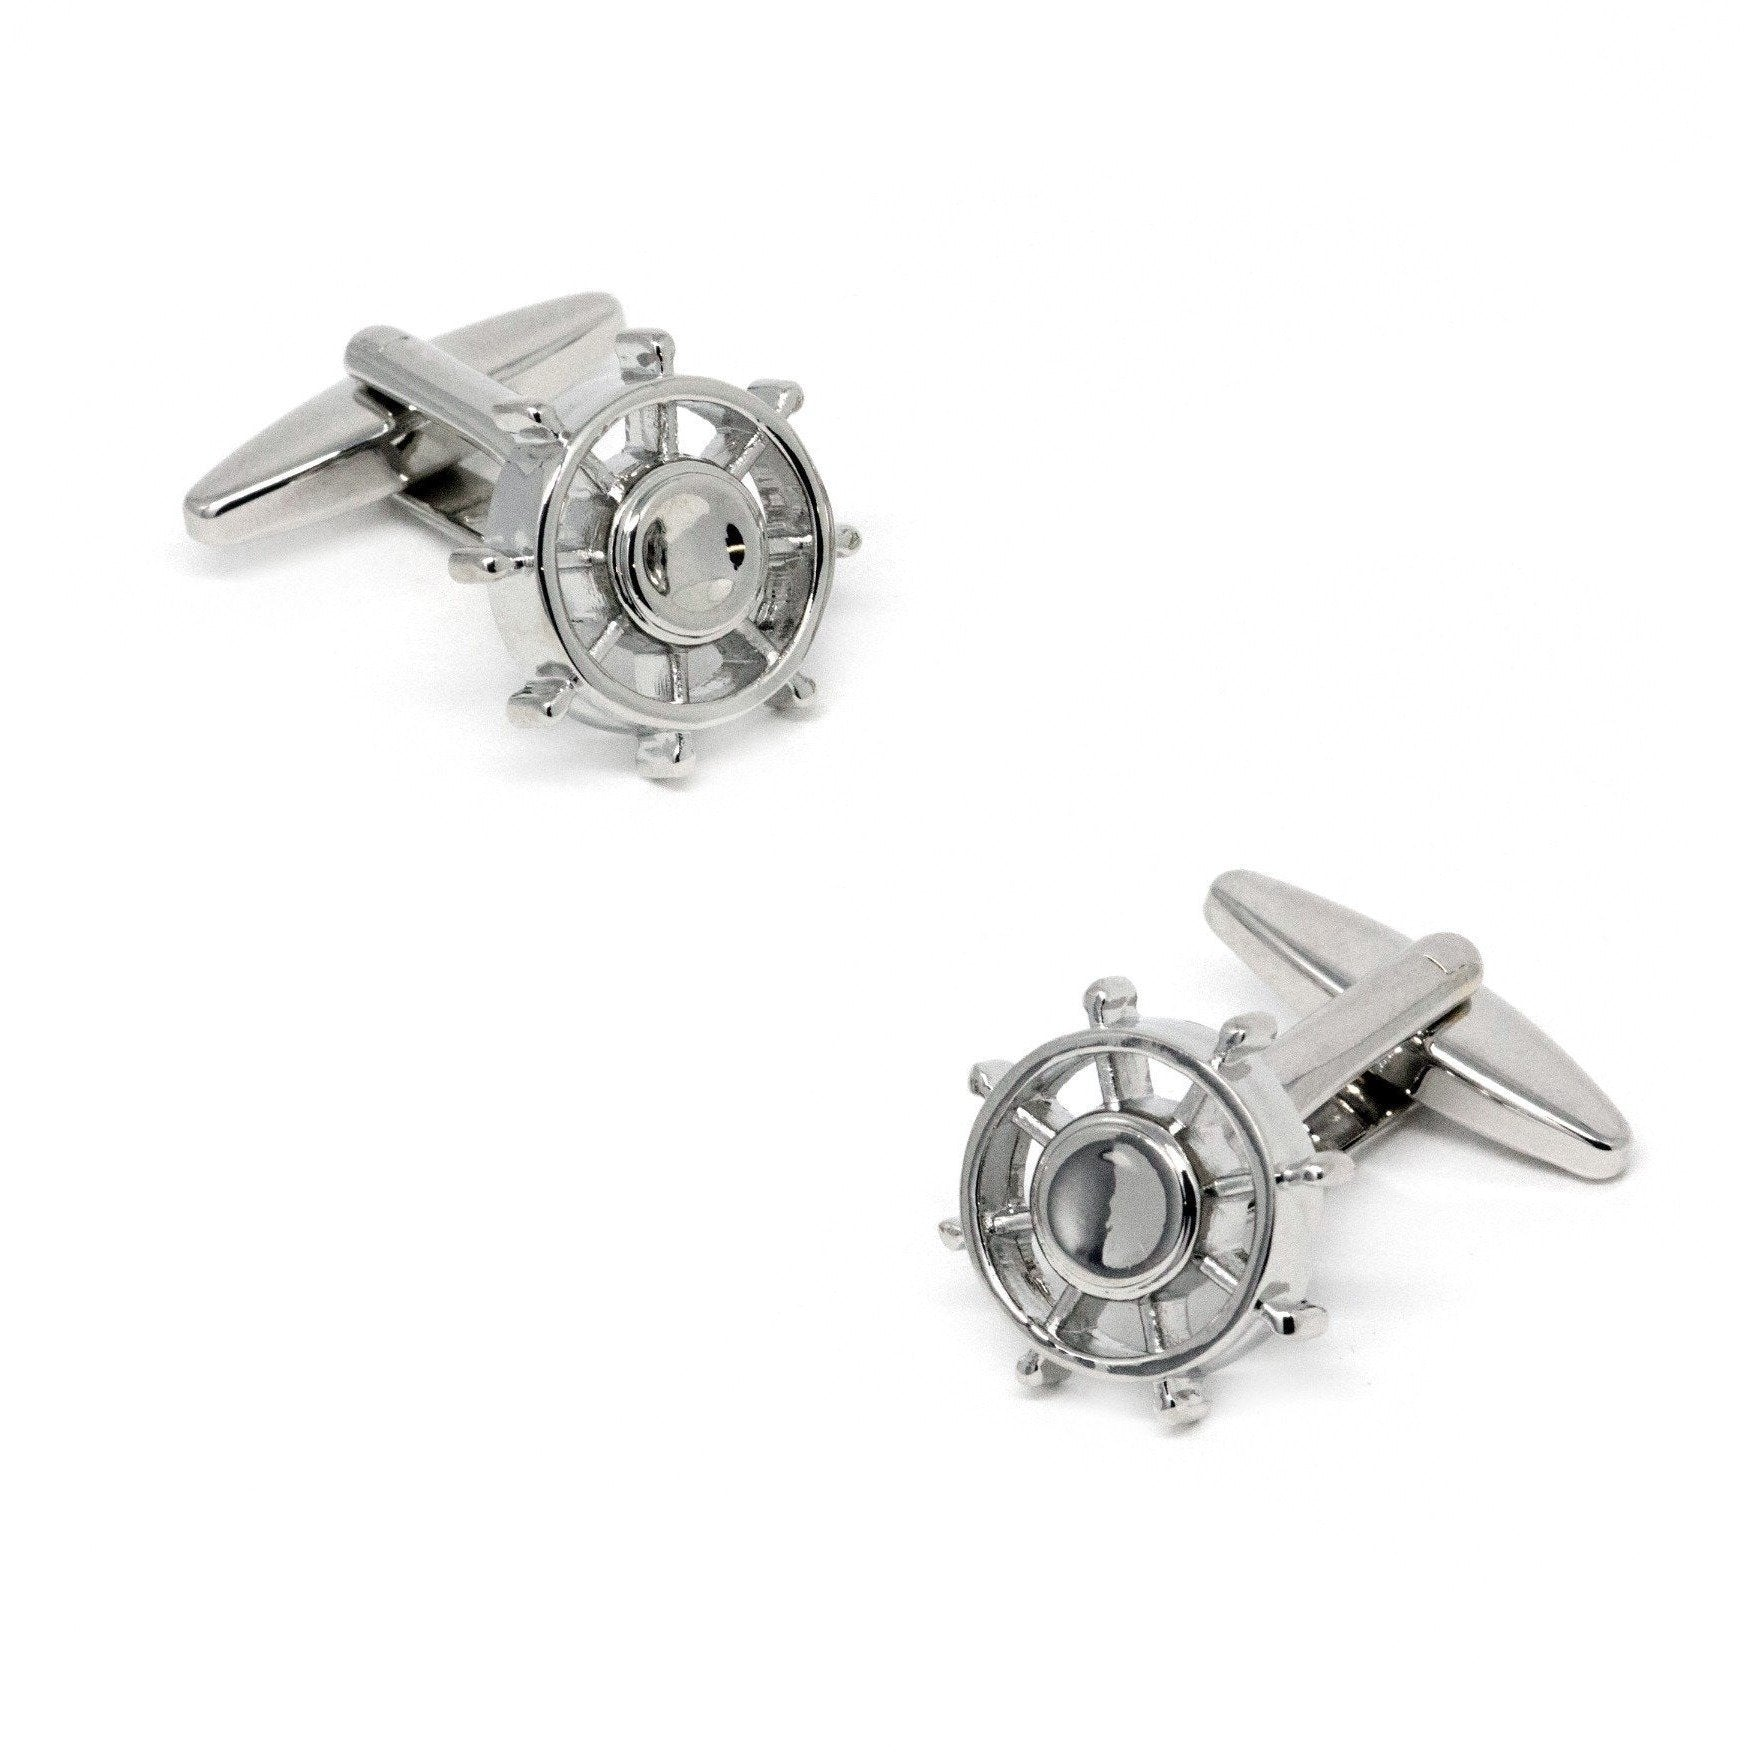 Silver Wheel Fidget Spinner Cufflinks, Novelty Cufflinks, Cuffed.com.au, CL8756, $29.00